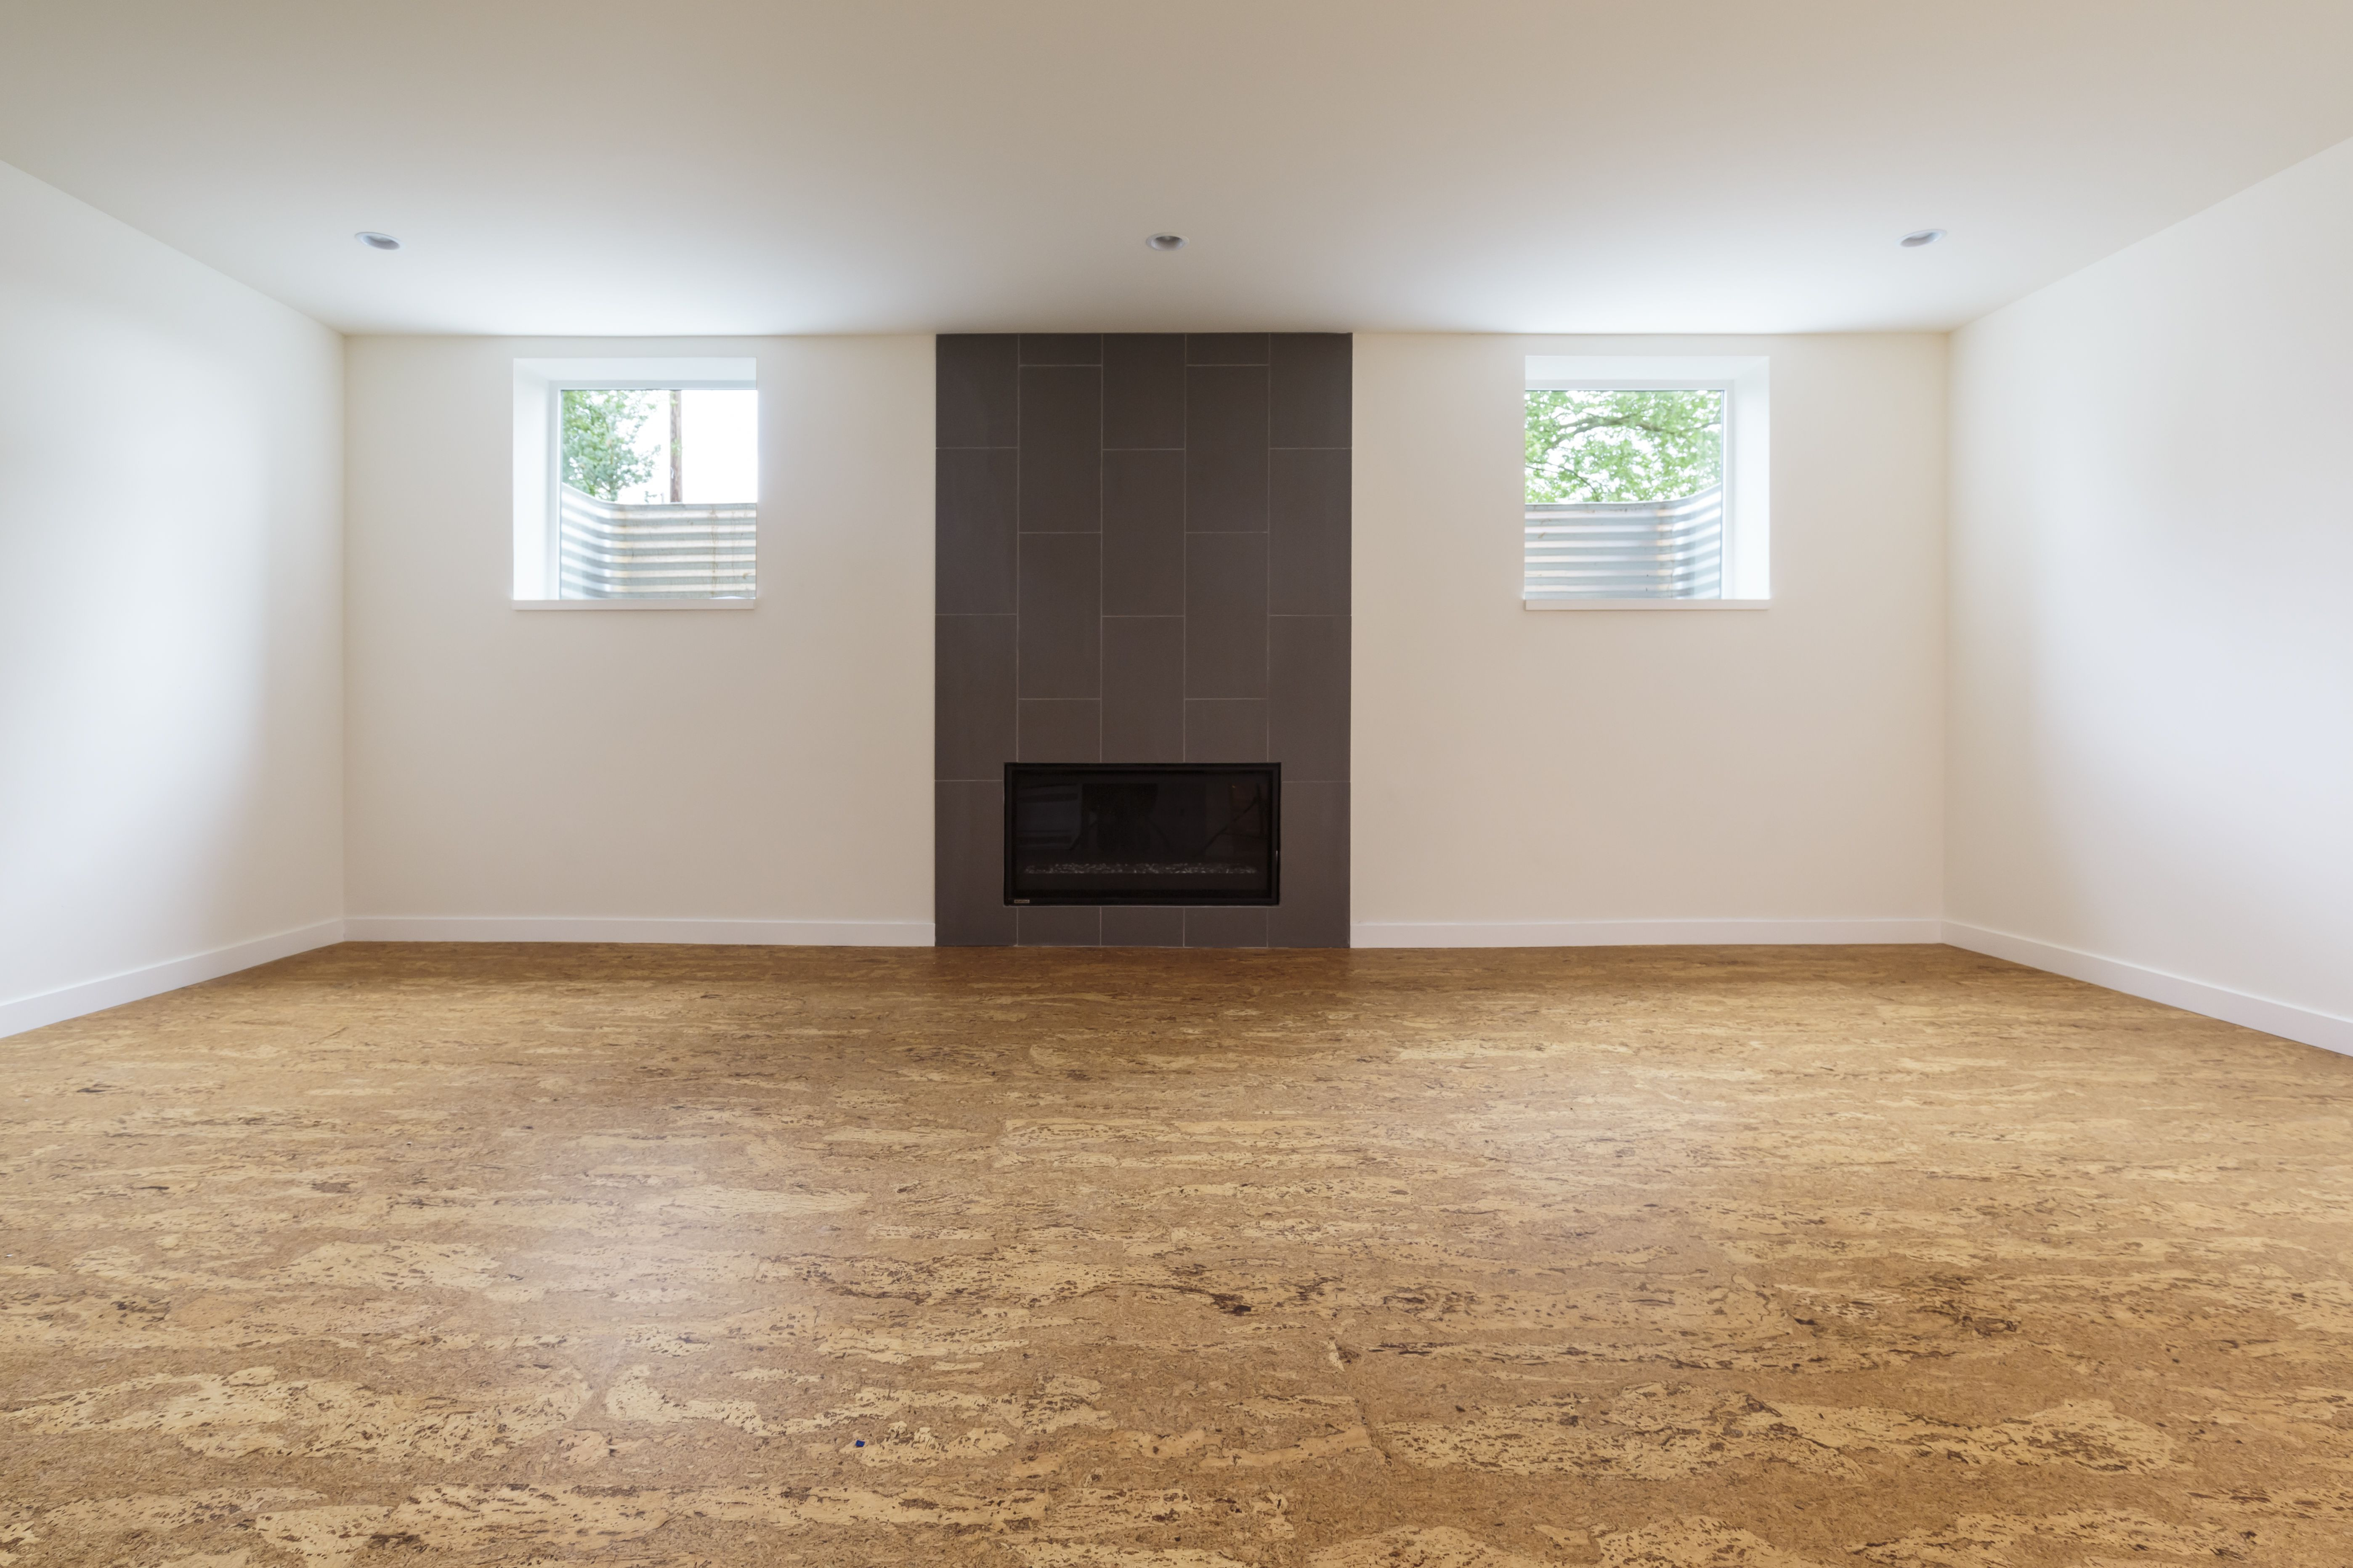 10 Stylish Master Bedroom Hardwood Floors 2021 free download master bedroom hardwood floors of the best flooring options for senior citizens pertaining to cork flooring in an unfurnished home